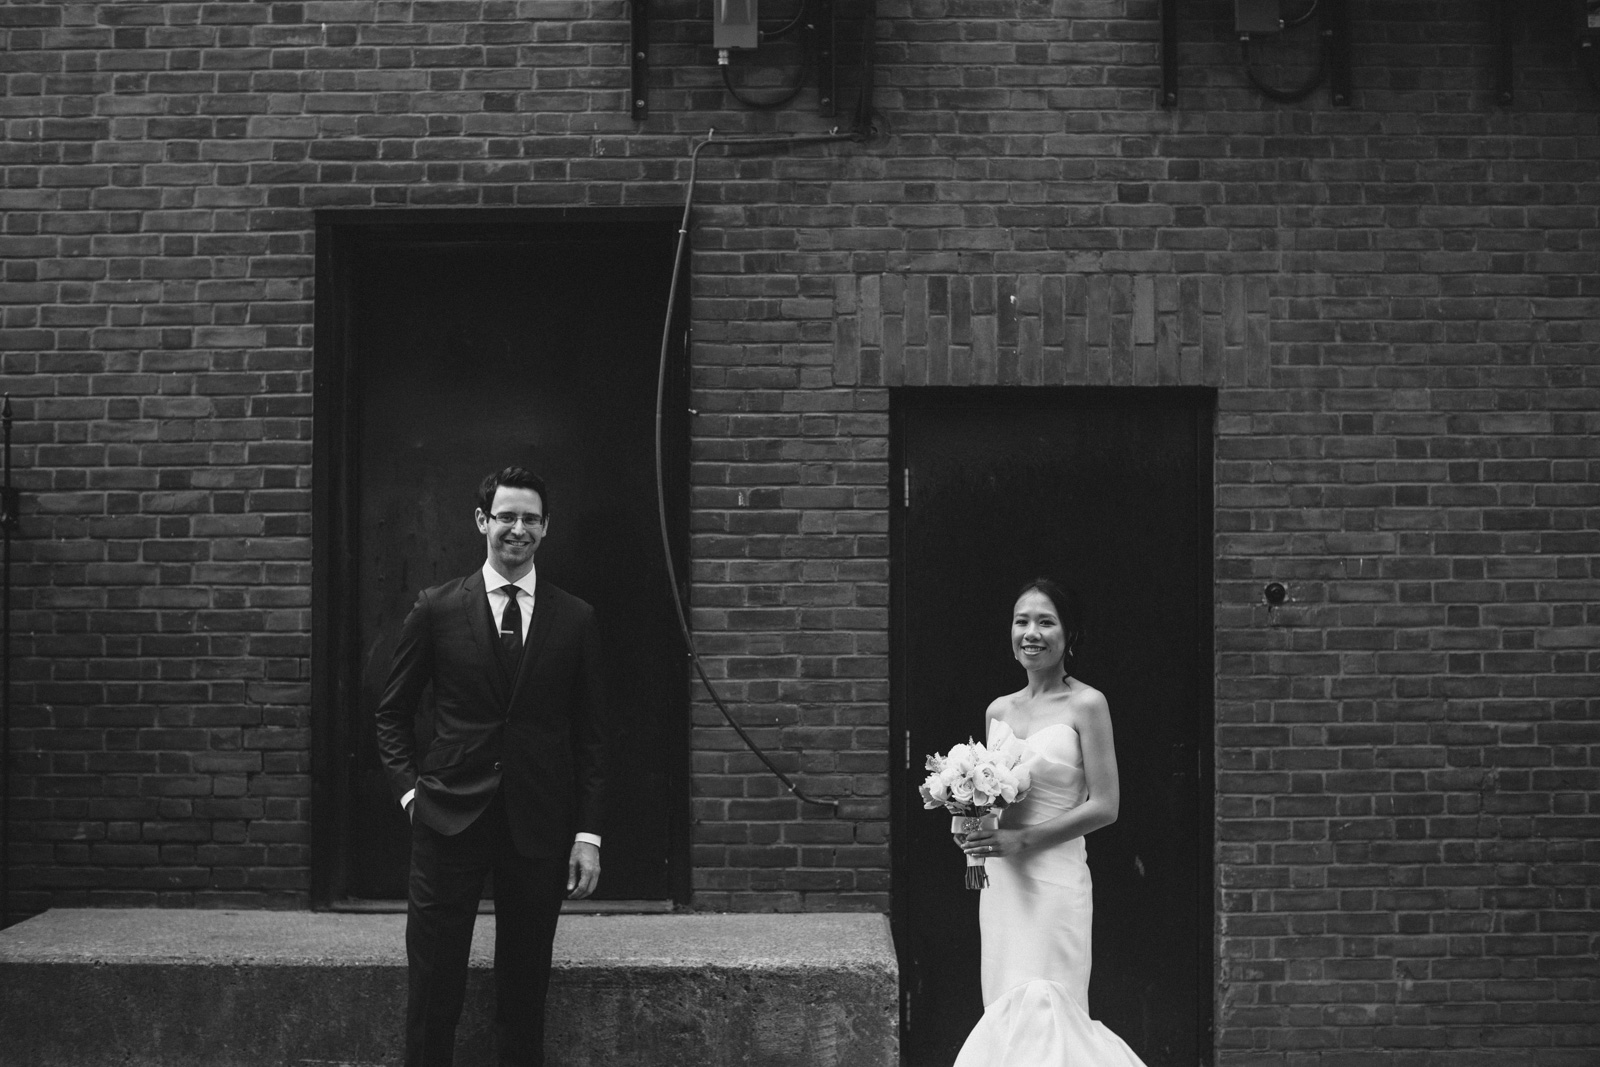 Canoe-Toronto-wedding-photography-JM-by-Sam-Wong-of-visual-cravings_19